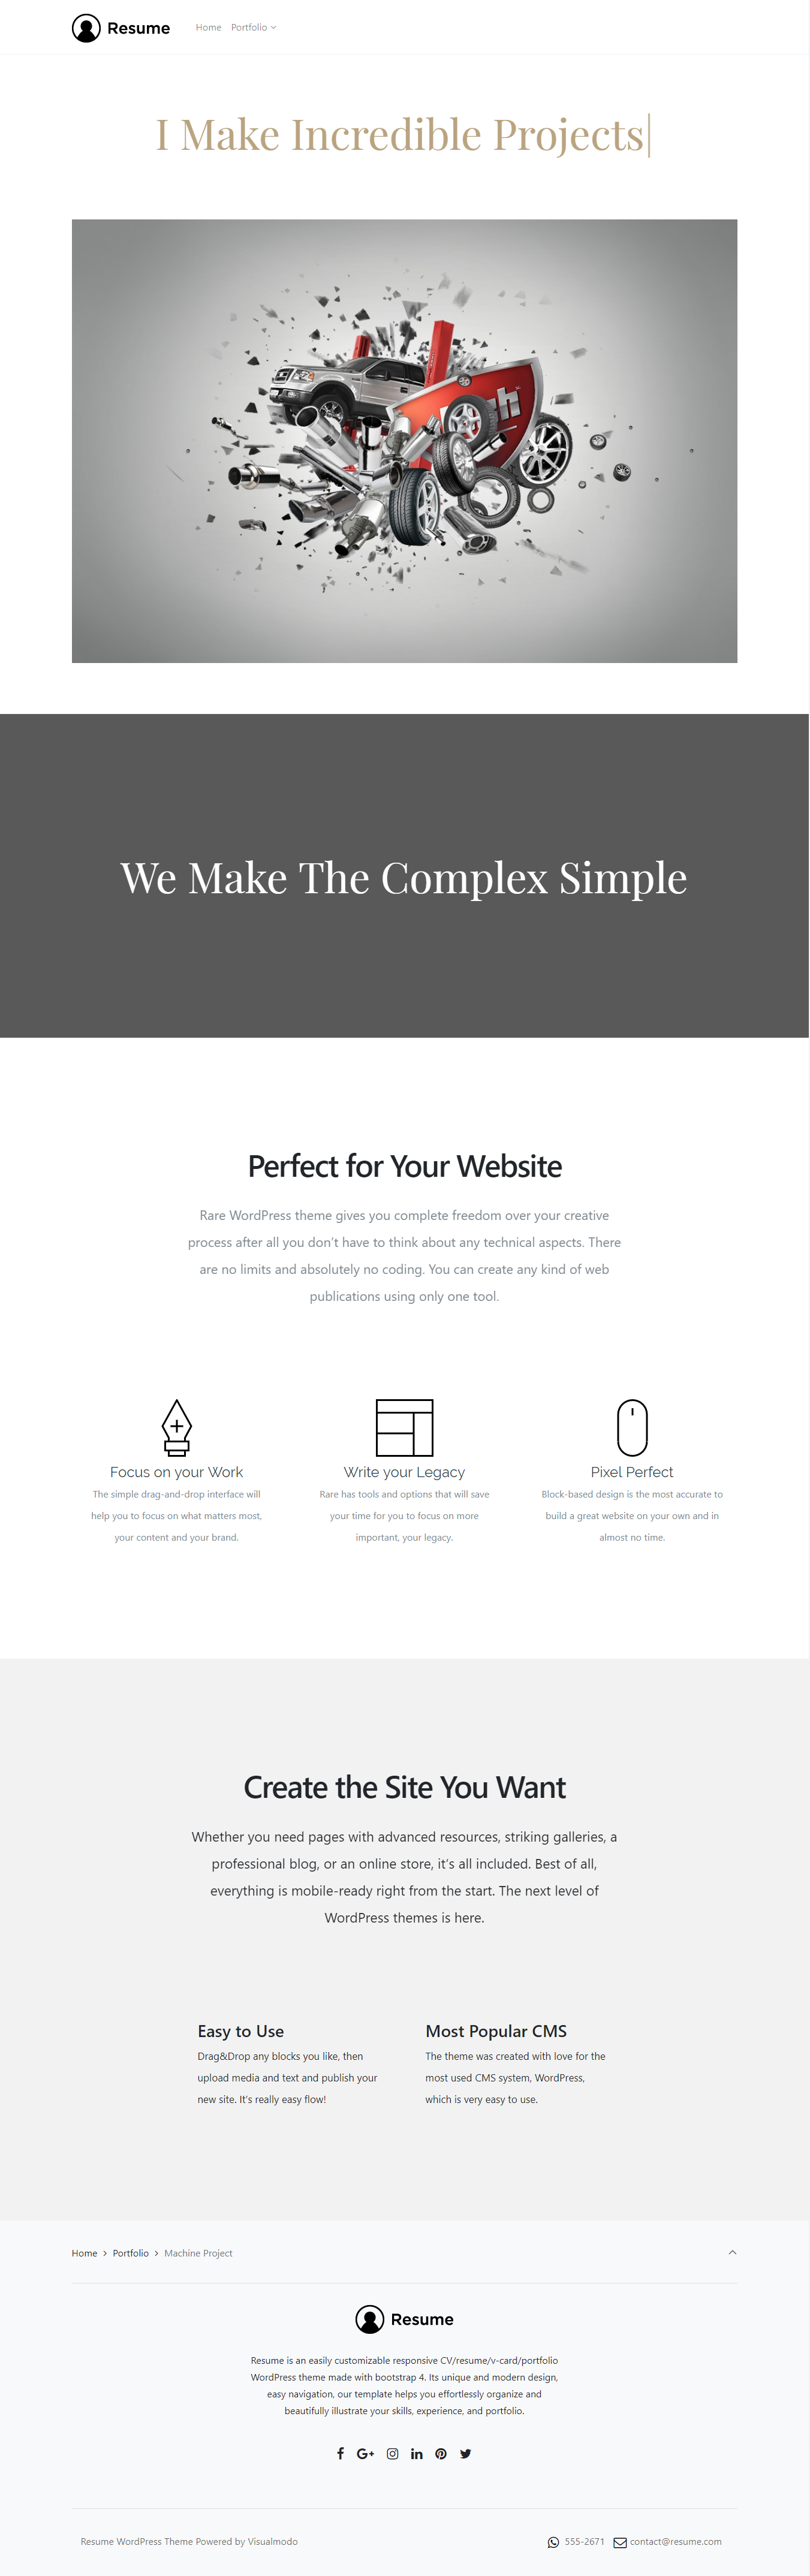 Resume WordPress Theme Responsive CV Template by